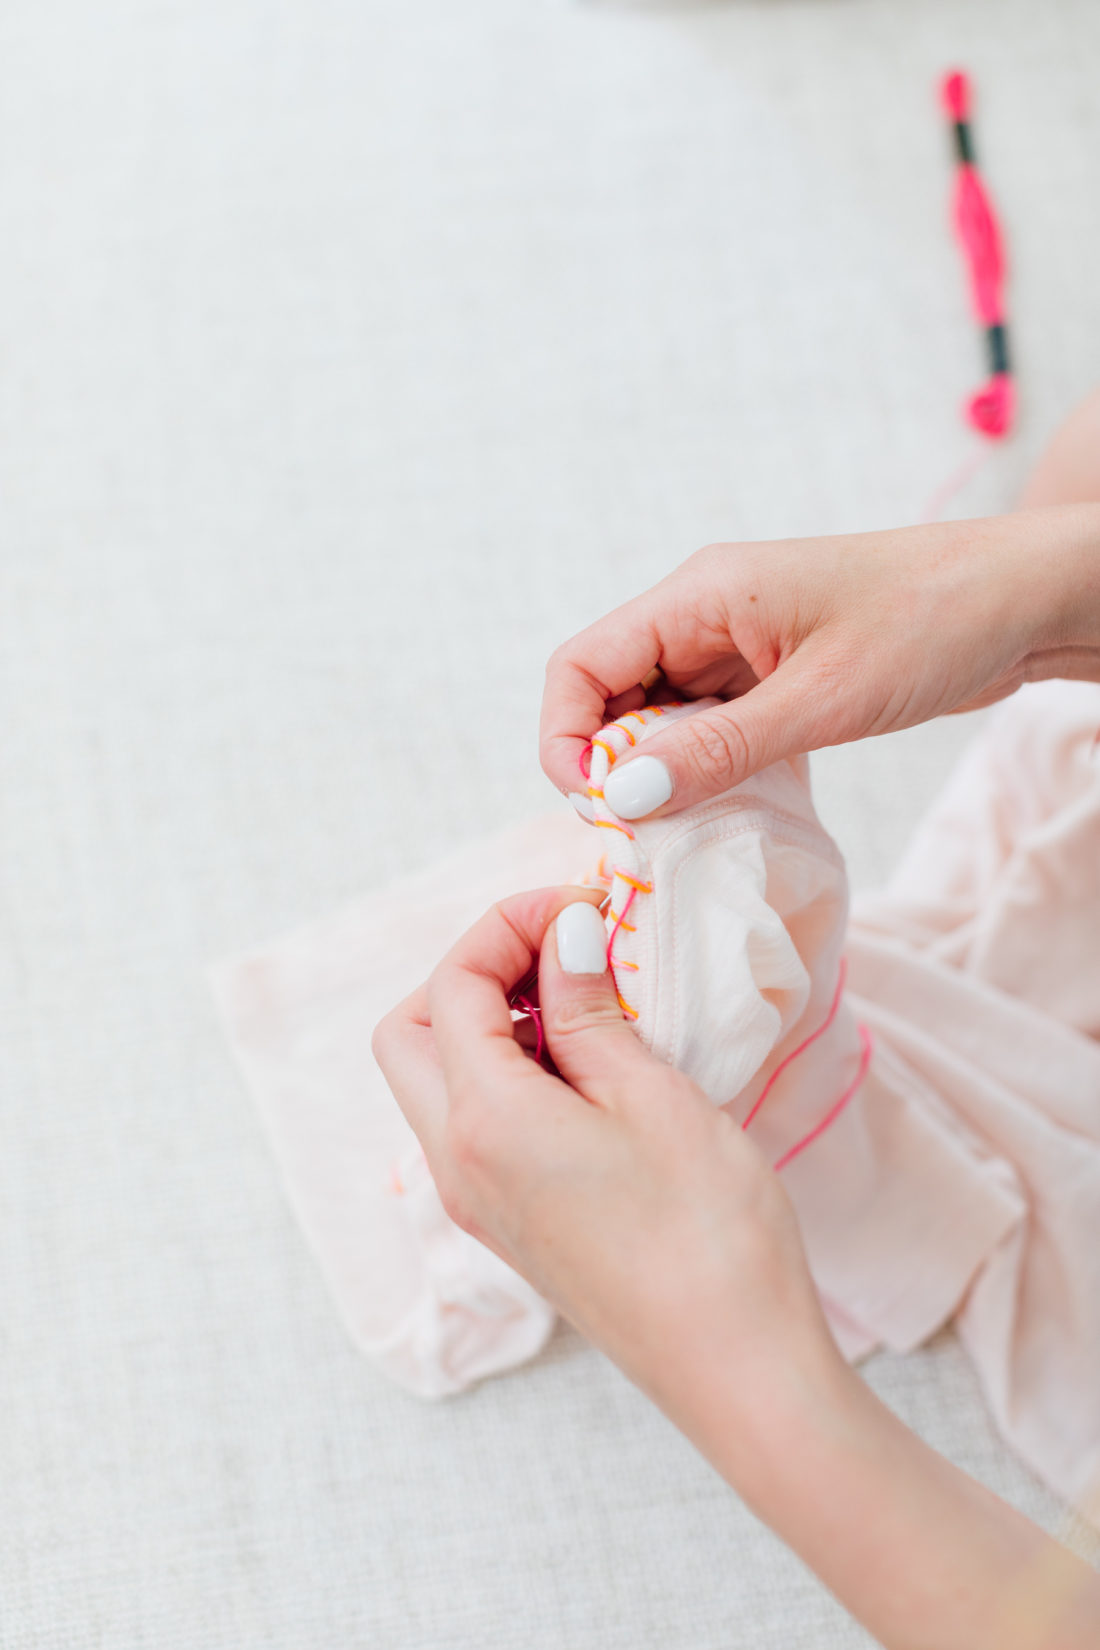 Eva Amurri Martino sewing a detail of thread on the collar of an old tee